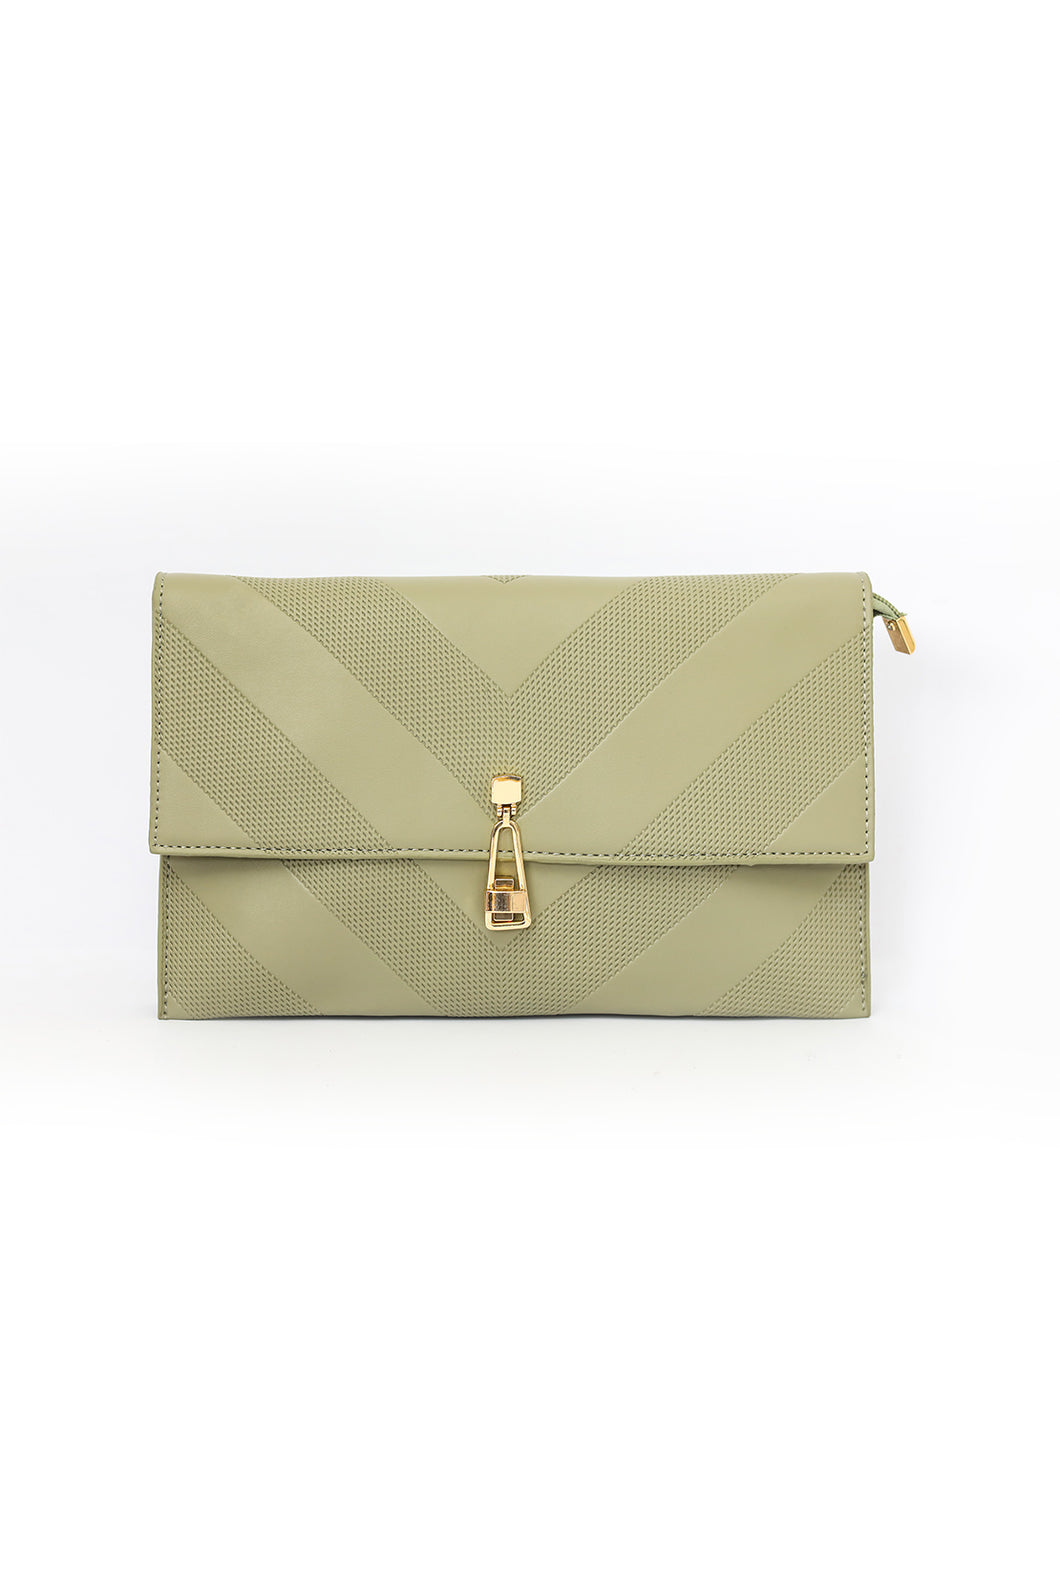 Strapped Textured Clutch - Light Green